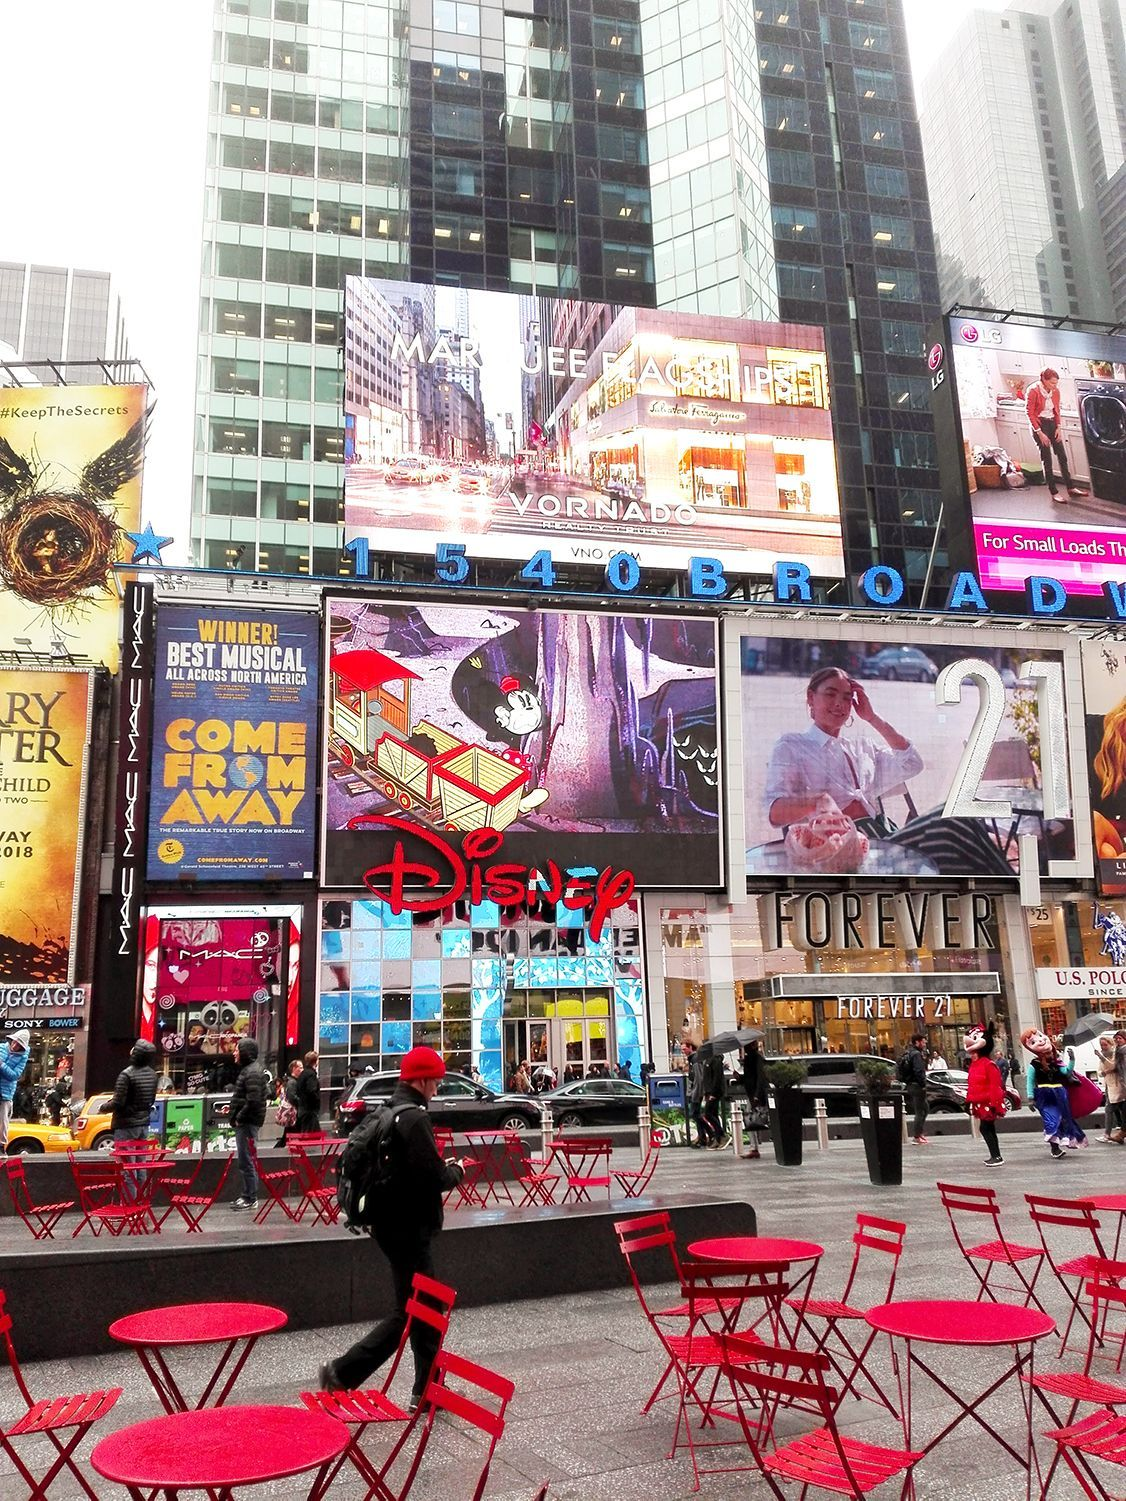 Times Square And The Red Chairs Timessquare Newyork Red Square City Travel Usa Times Square Red Chair City